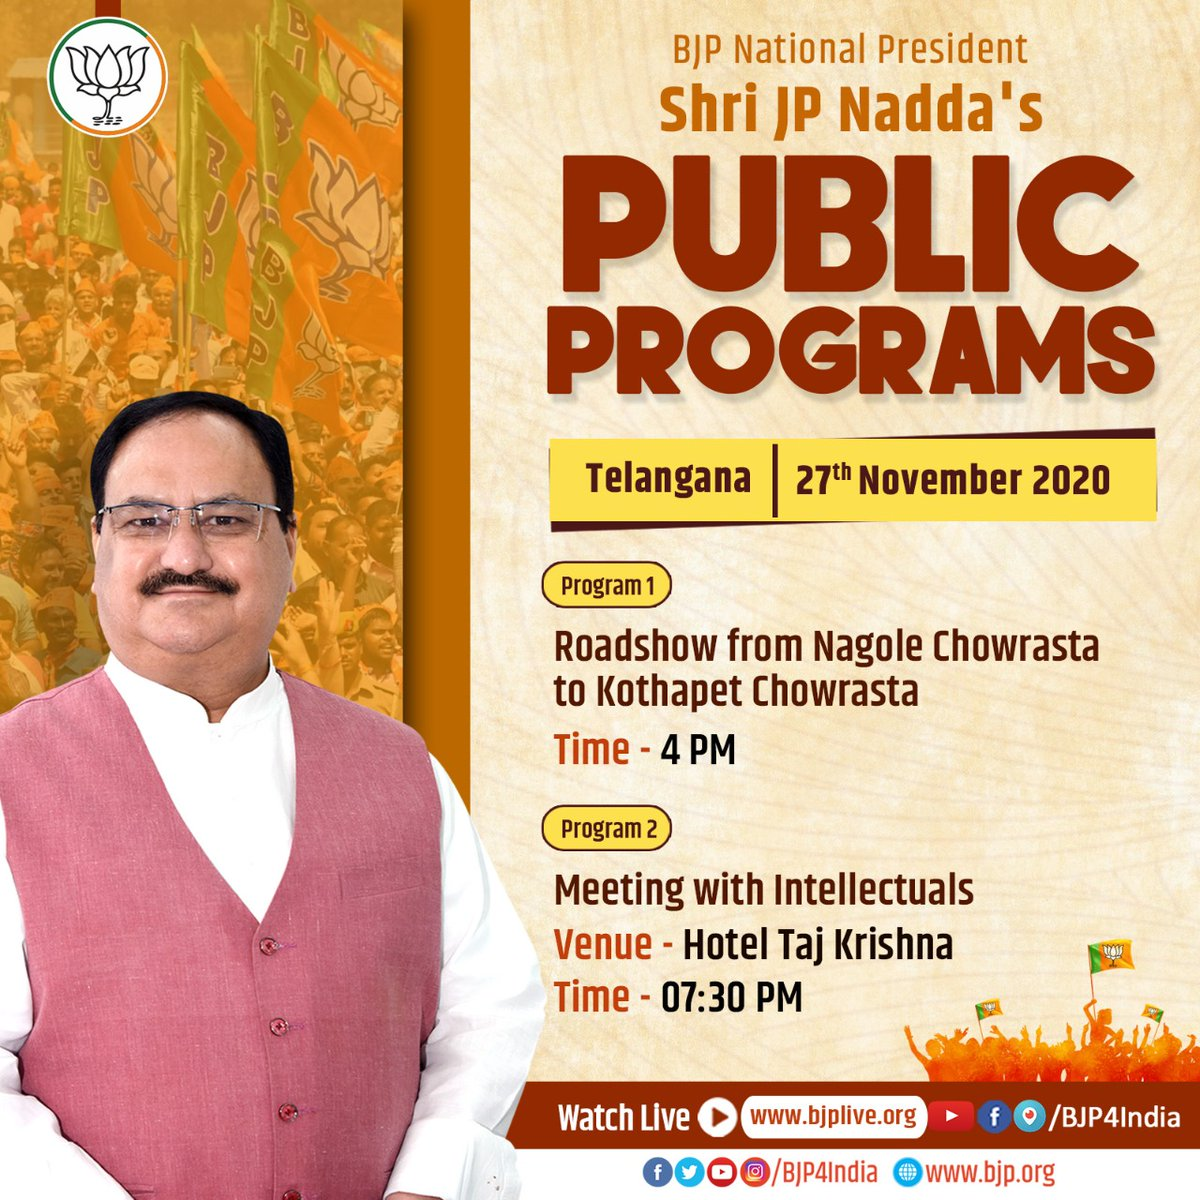 Schedule of BJP National President Shri @JPNadda's public programs on 27th November 2020 in Telangana.  Watch on  •  •  •  •